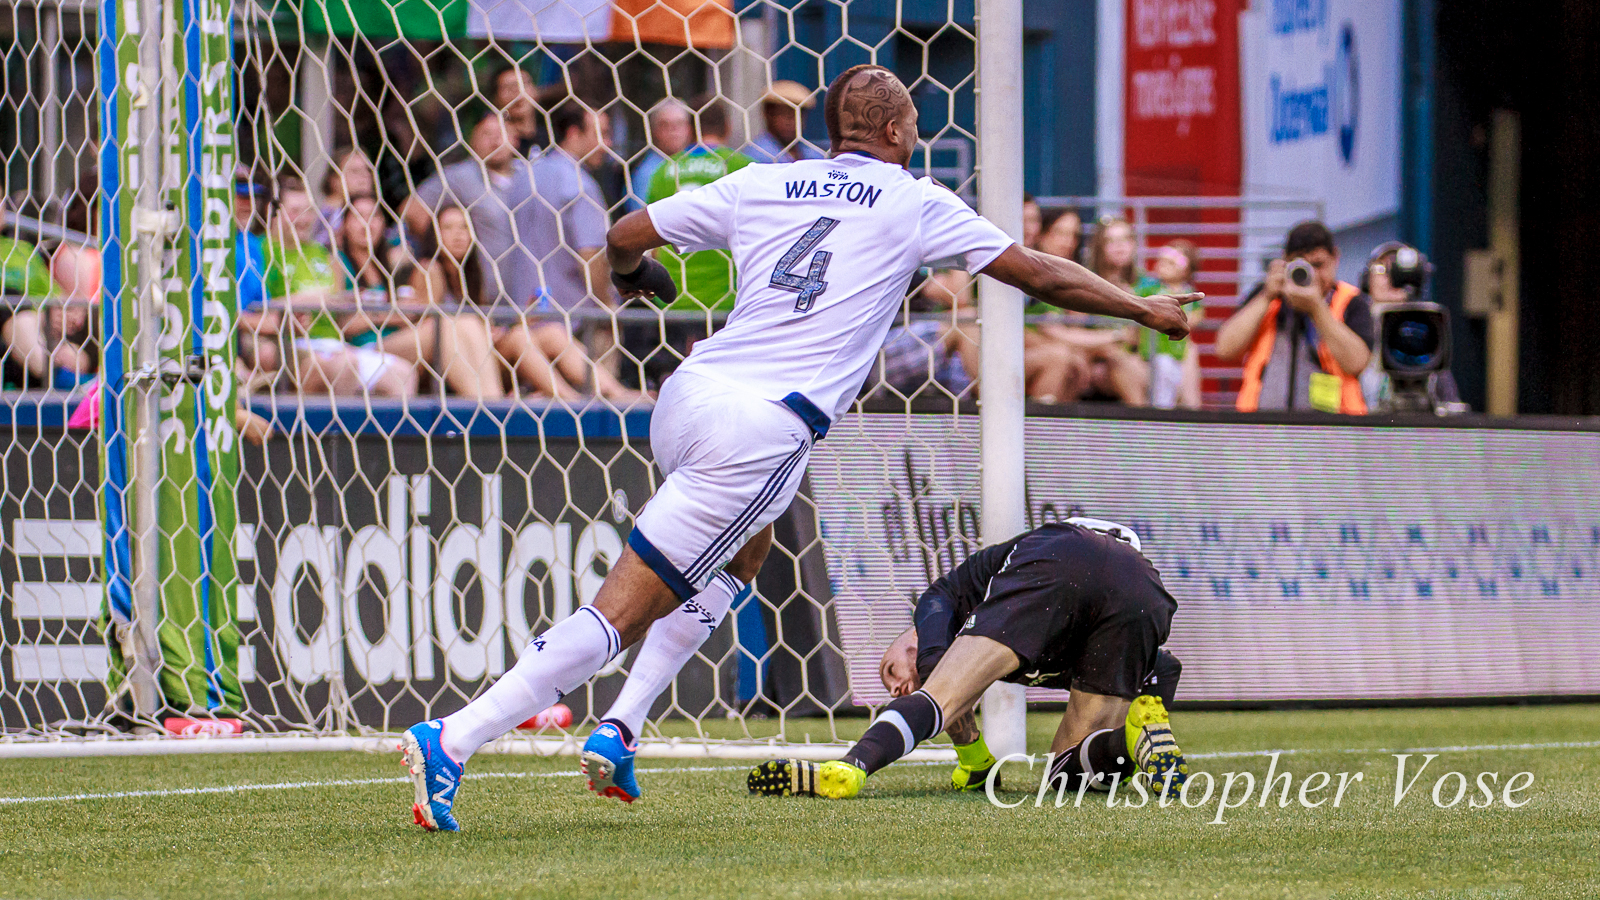 2015-08-01 Kendall Waston Goal Reaction (Kah's second).jpg